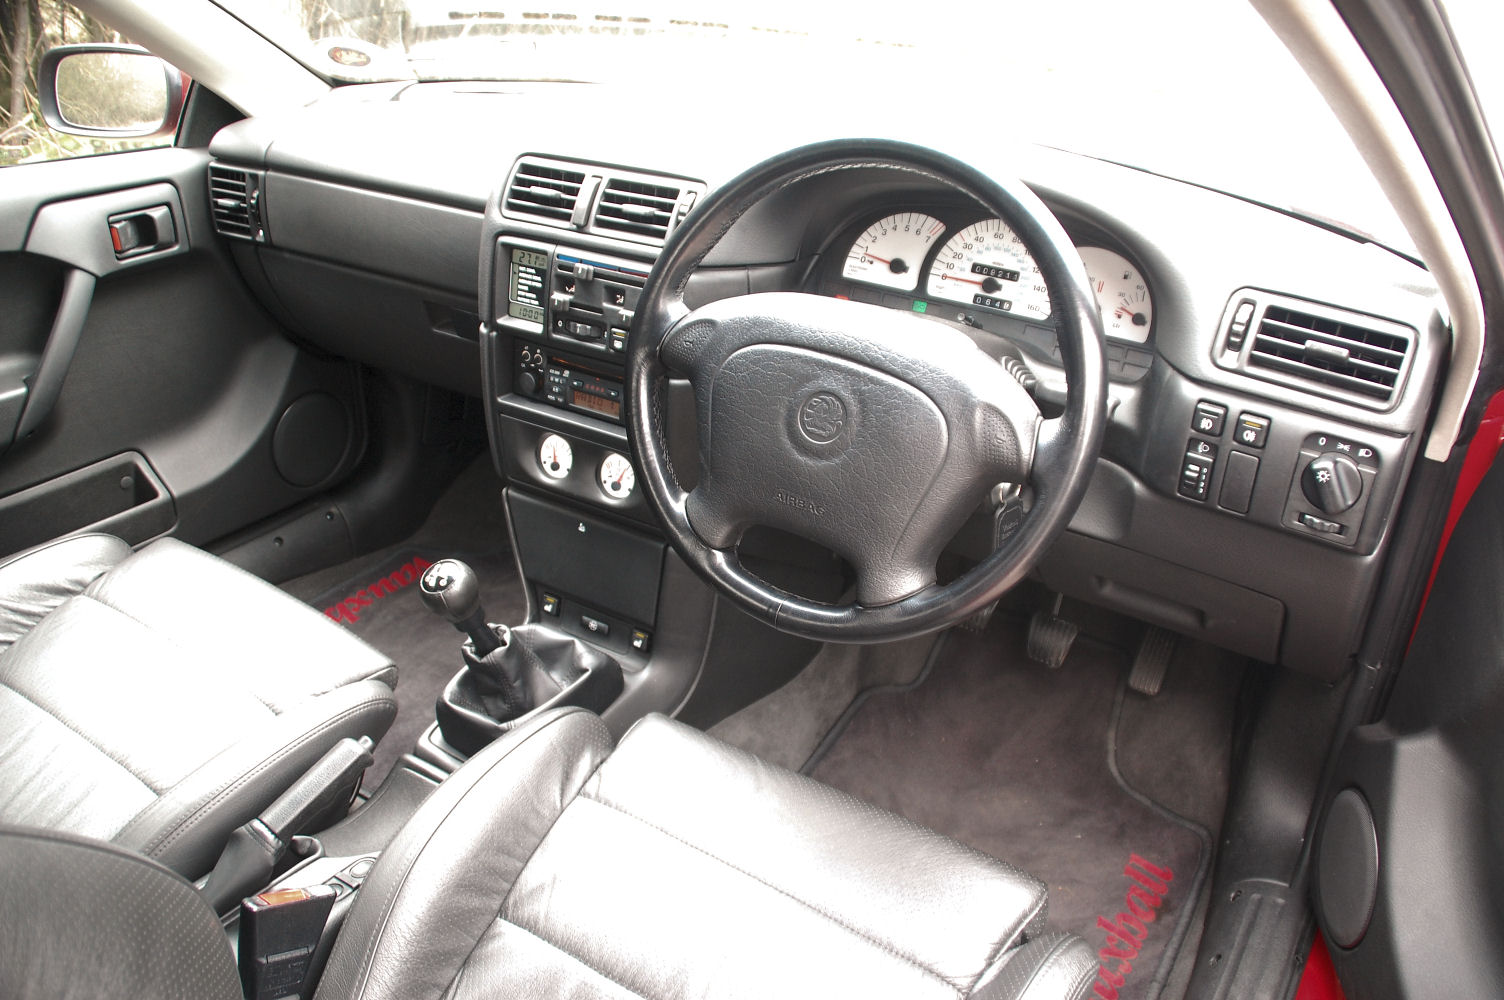 Opel Calibra Interieur The Gallery For Gt Opel Calibra Interior